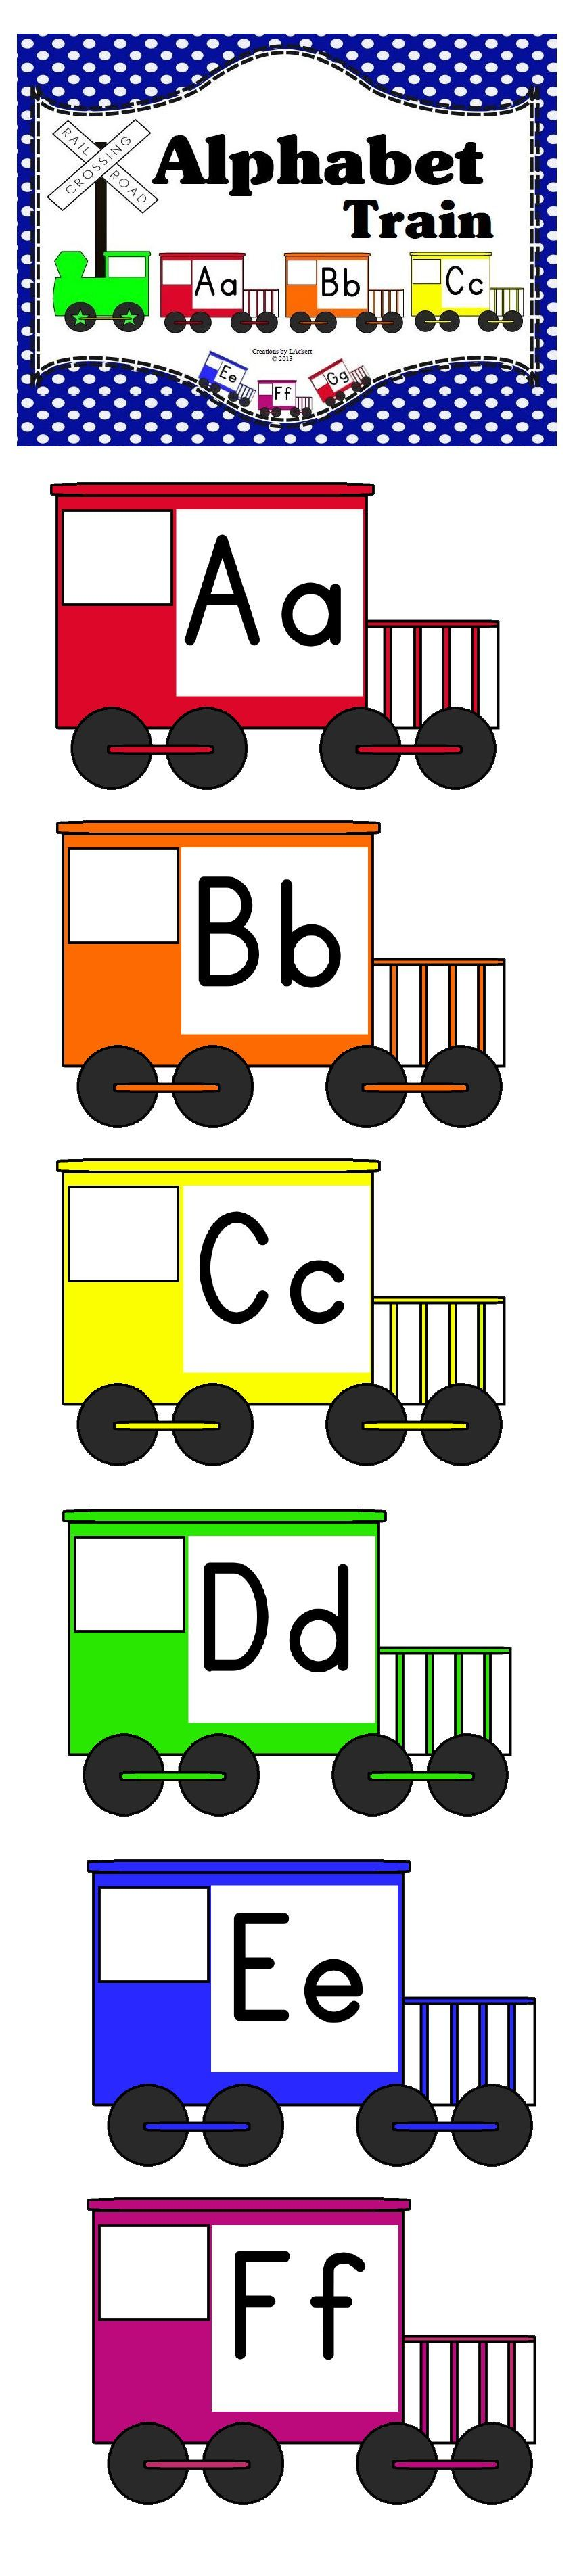 Alphabet train cute to display in your 39 classroom 39 or for laminate and have children put - Putting together stylish kitchen abcs ...